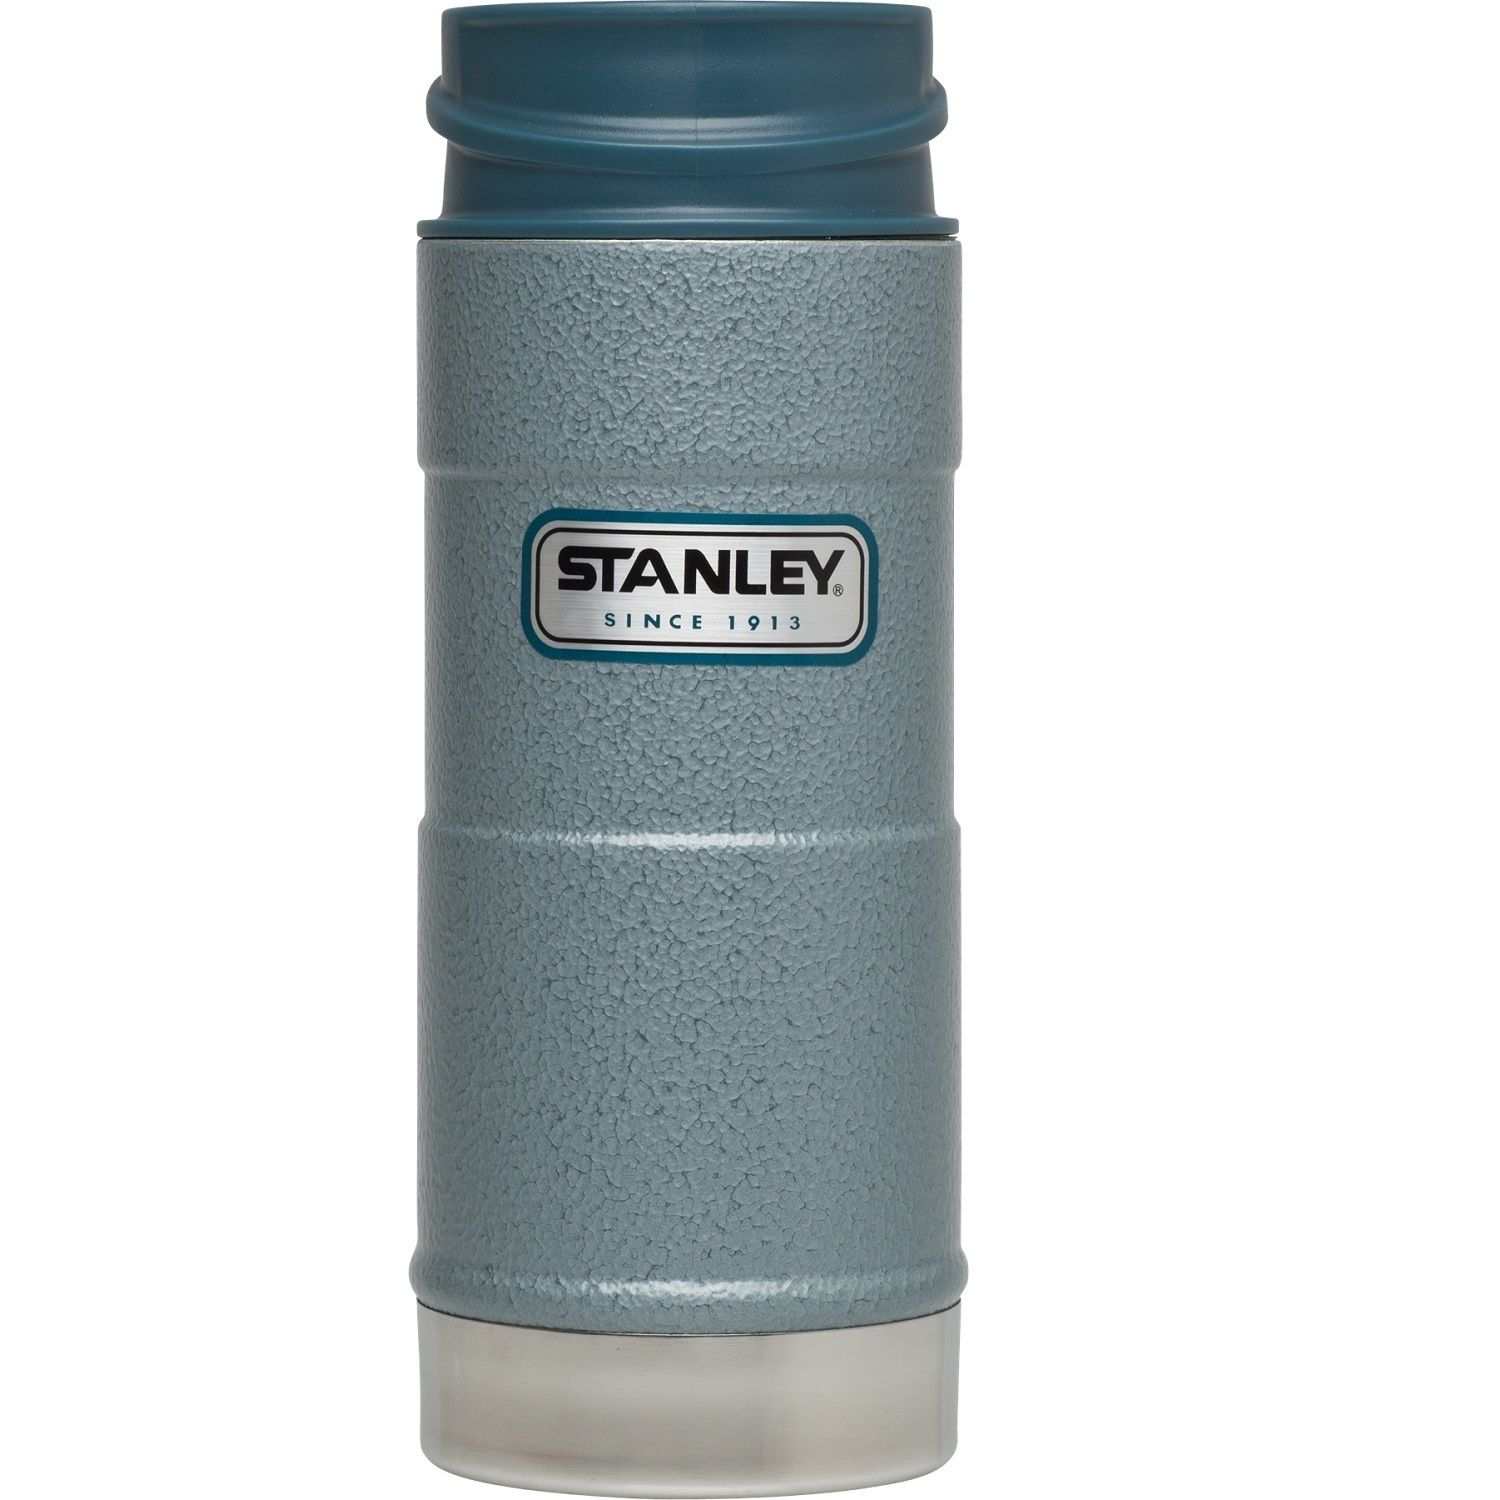 Ounce 12 Vacuum MugChristmas One Hand For Classic Stanley Ideas vnwN0Om8